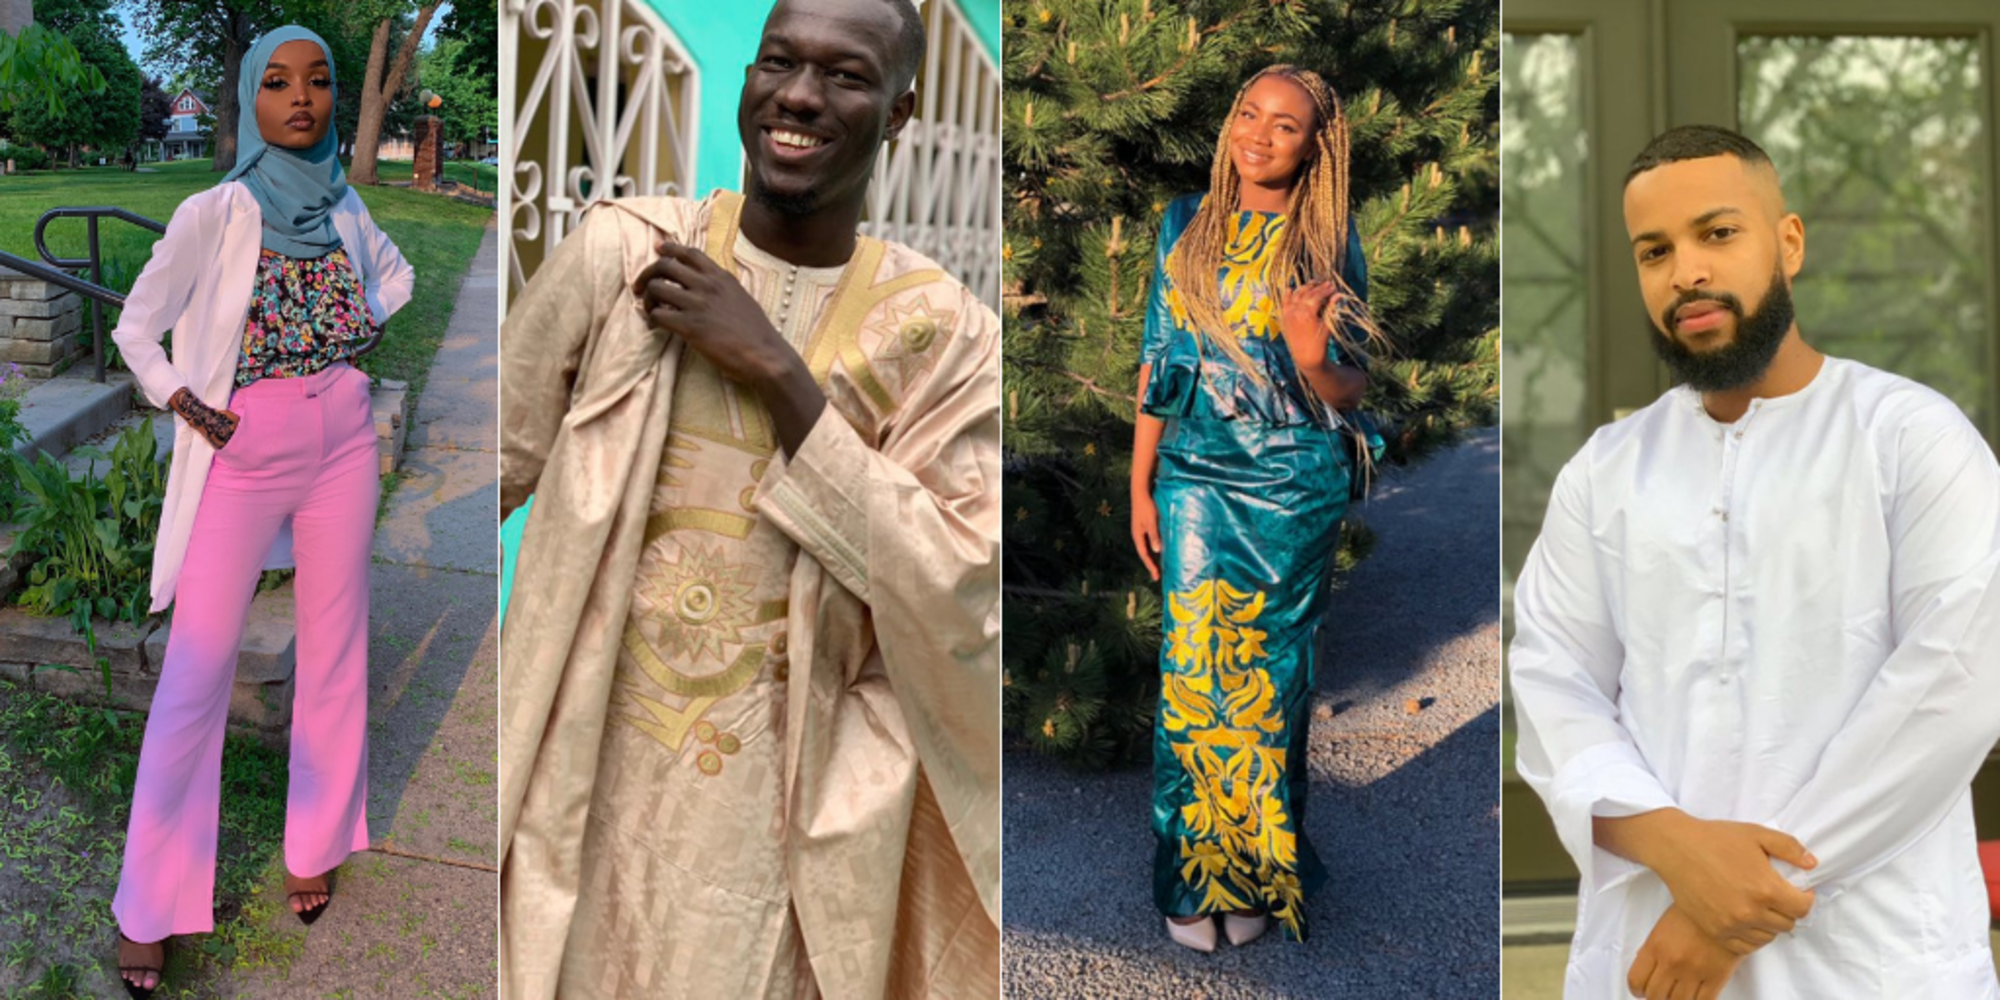 #BlackOutEid: Young Black Muslims Celebrate Eid Al-Fitr In Their Flyest Outfits